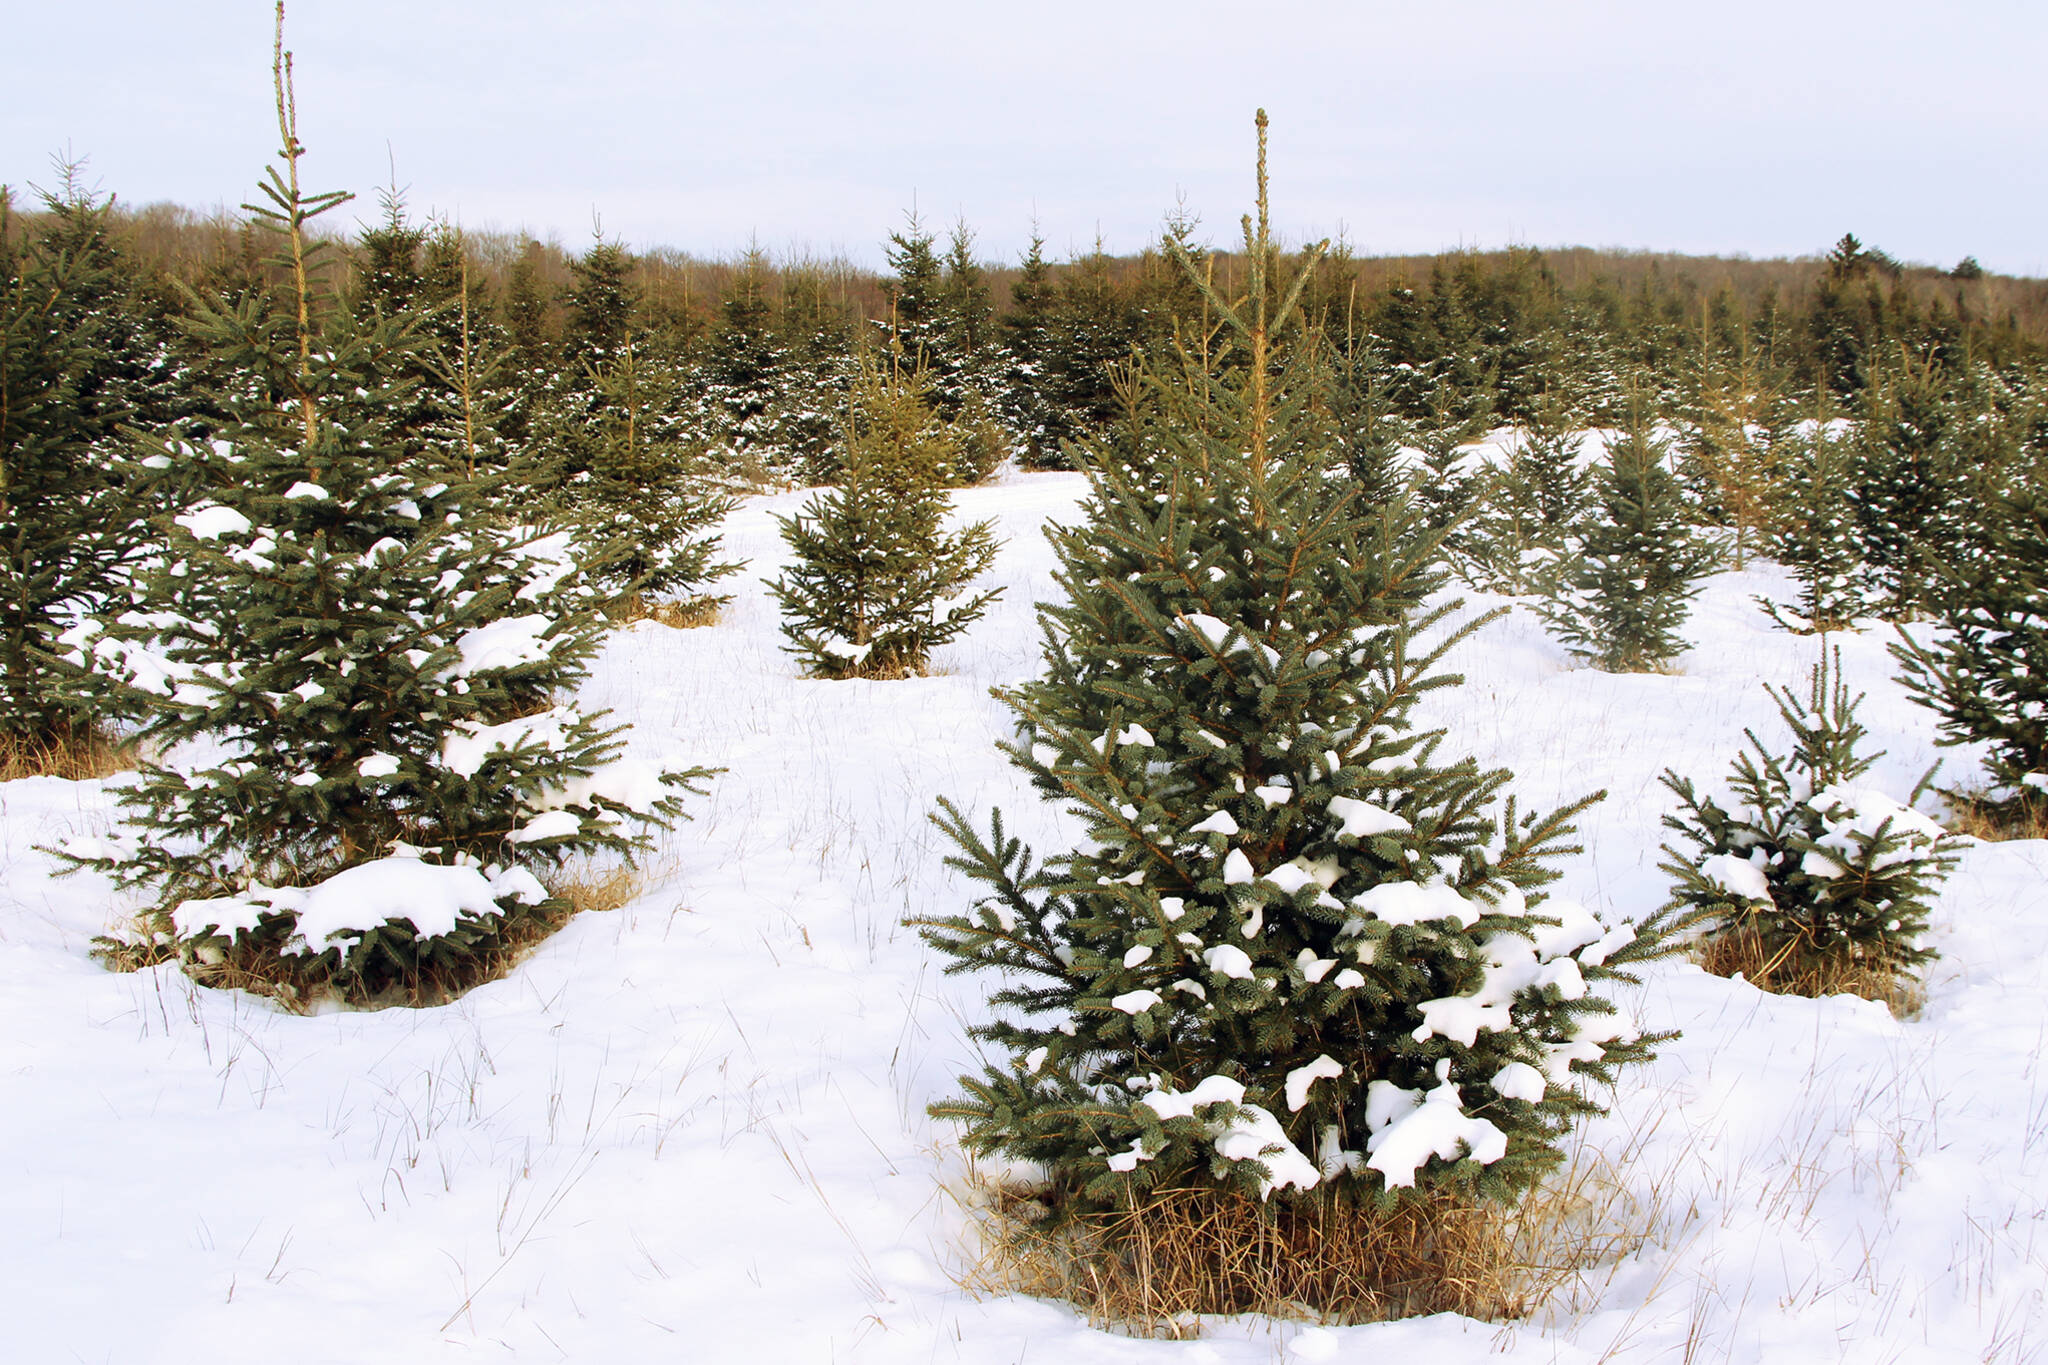 10 Farms To Cut Down Your Own Christmas Tree Near Toronto